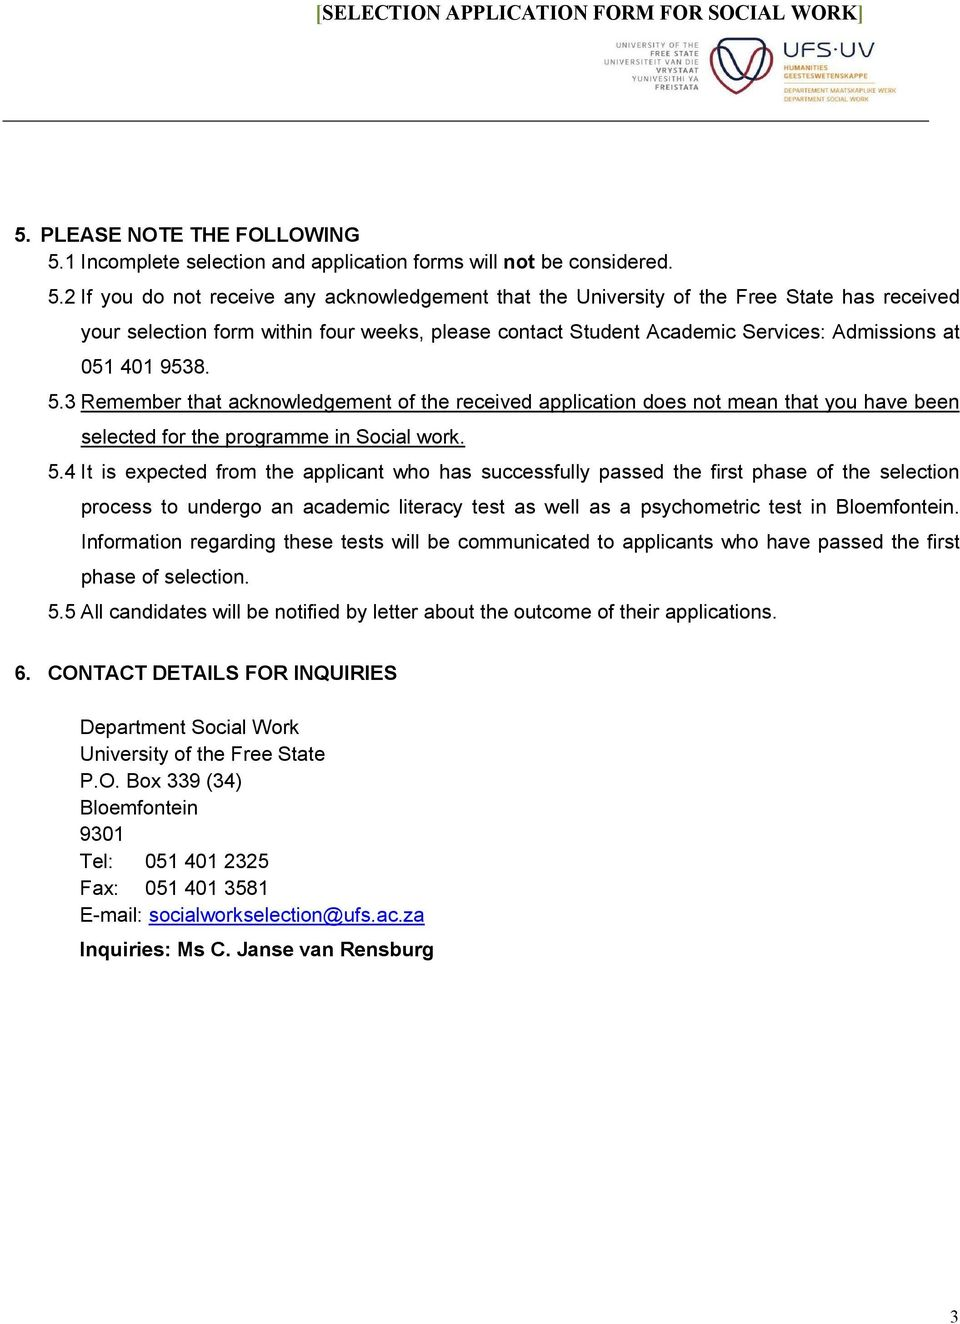 2 If you do not receive any acknowledgement that the University of the Free  State has